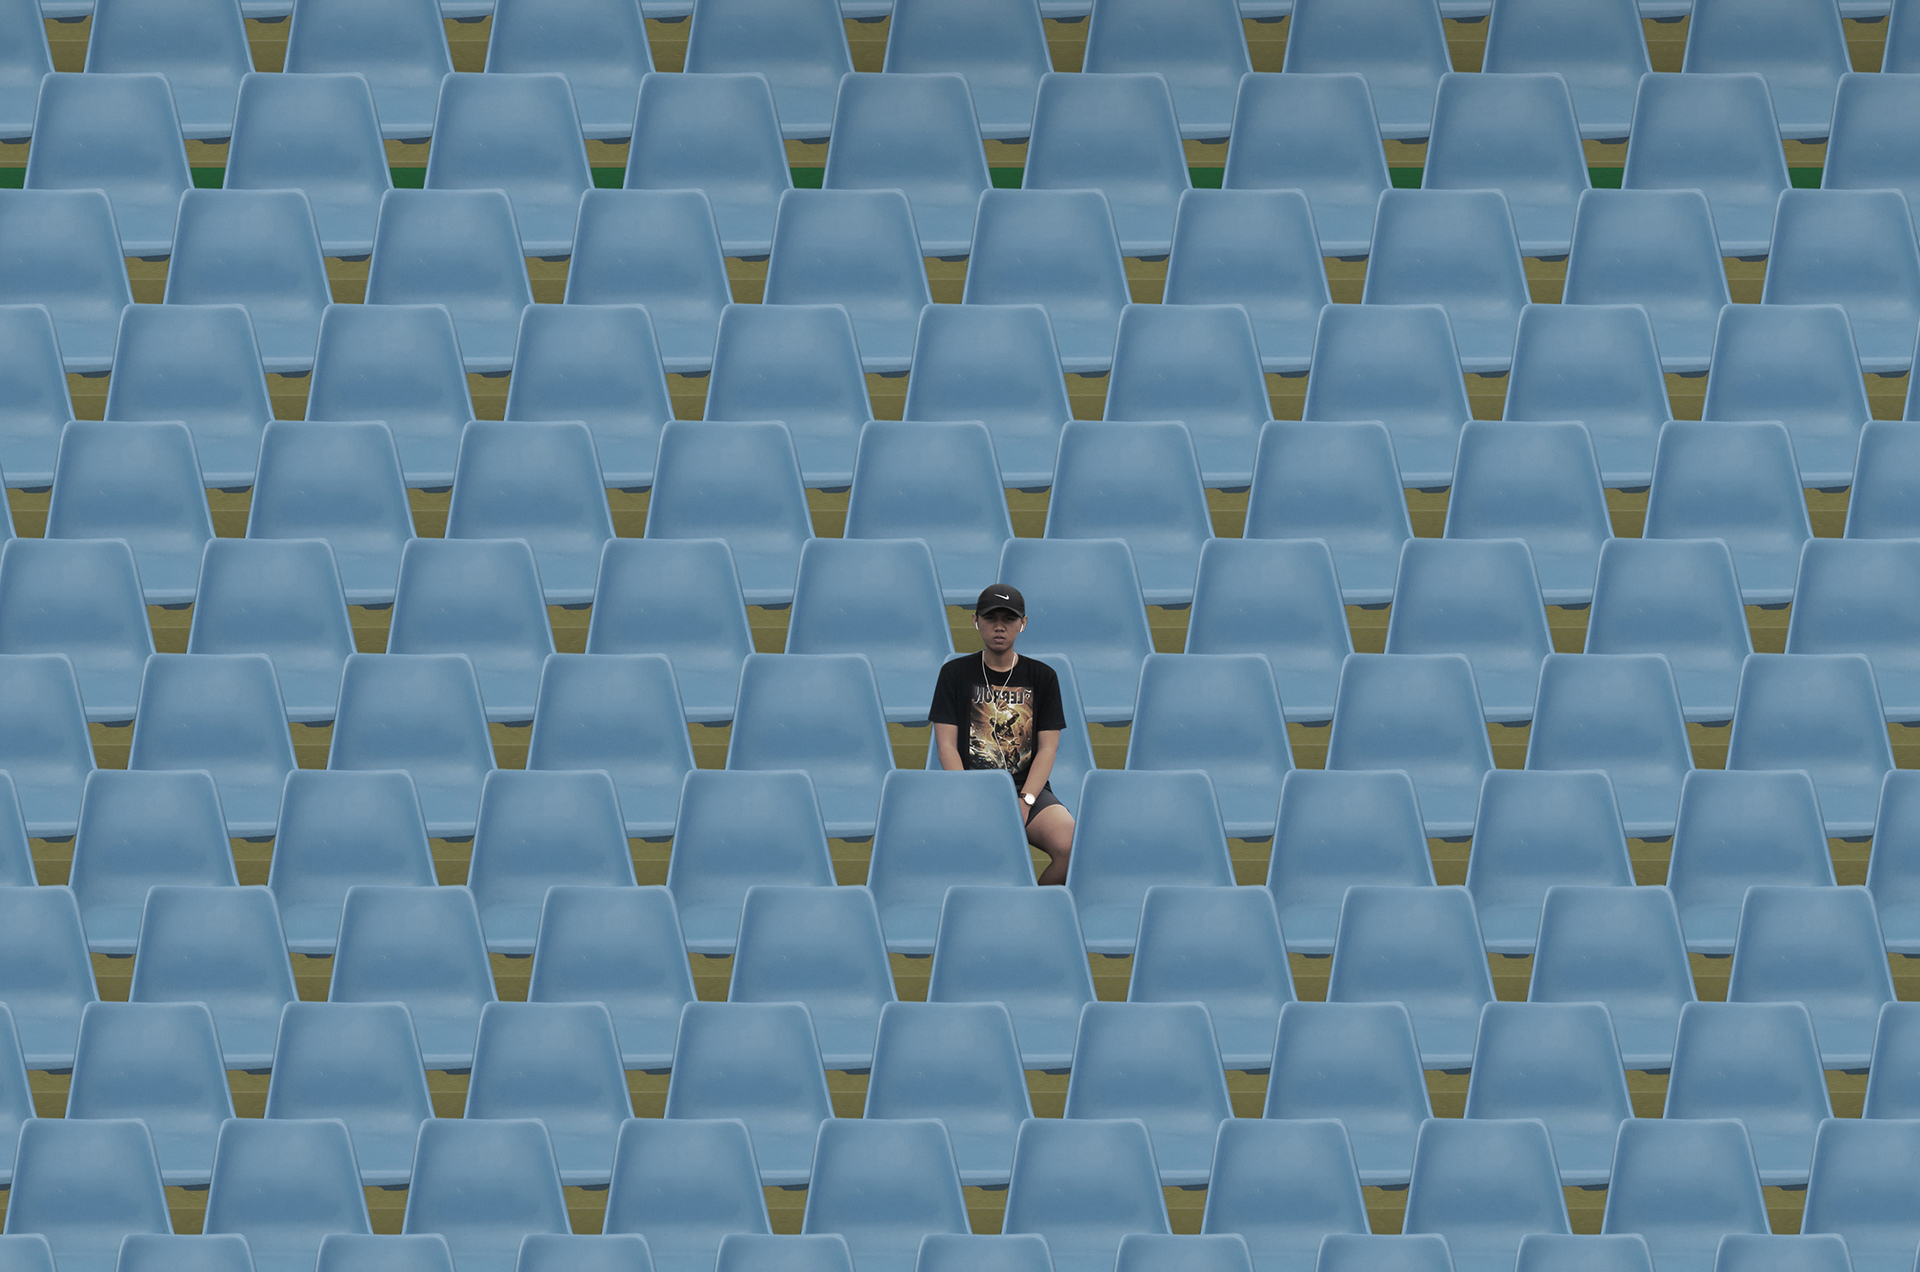 Captured here is a man sitting between a sea of empty blue chairs | Andhika Ramadhian | STIRworld